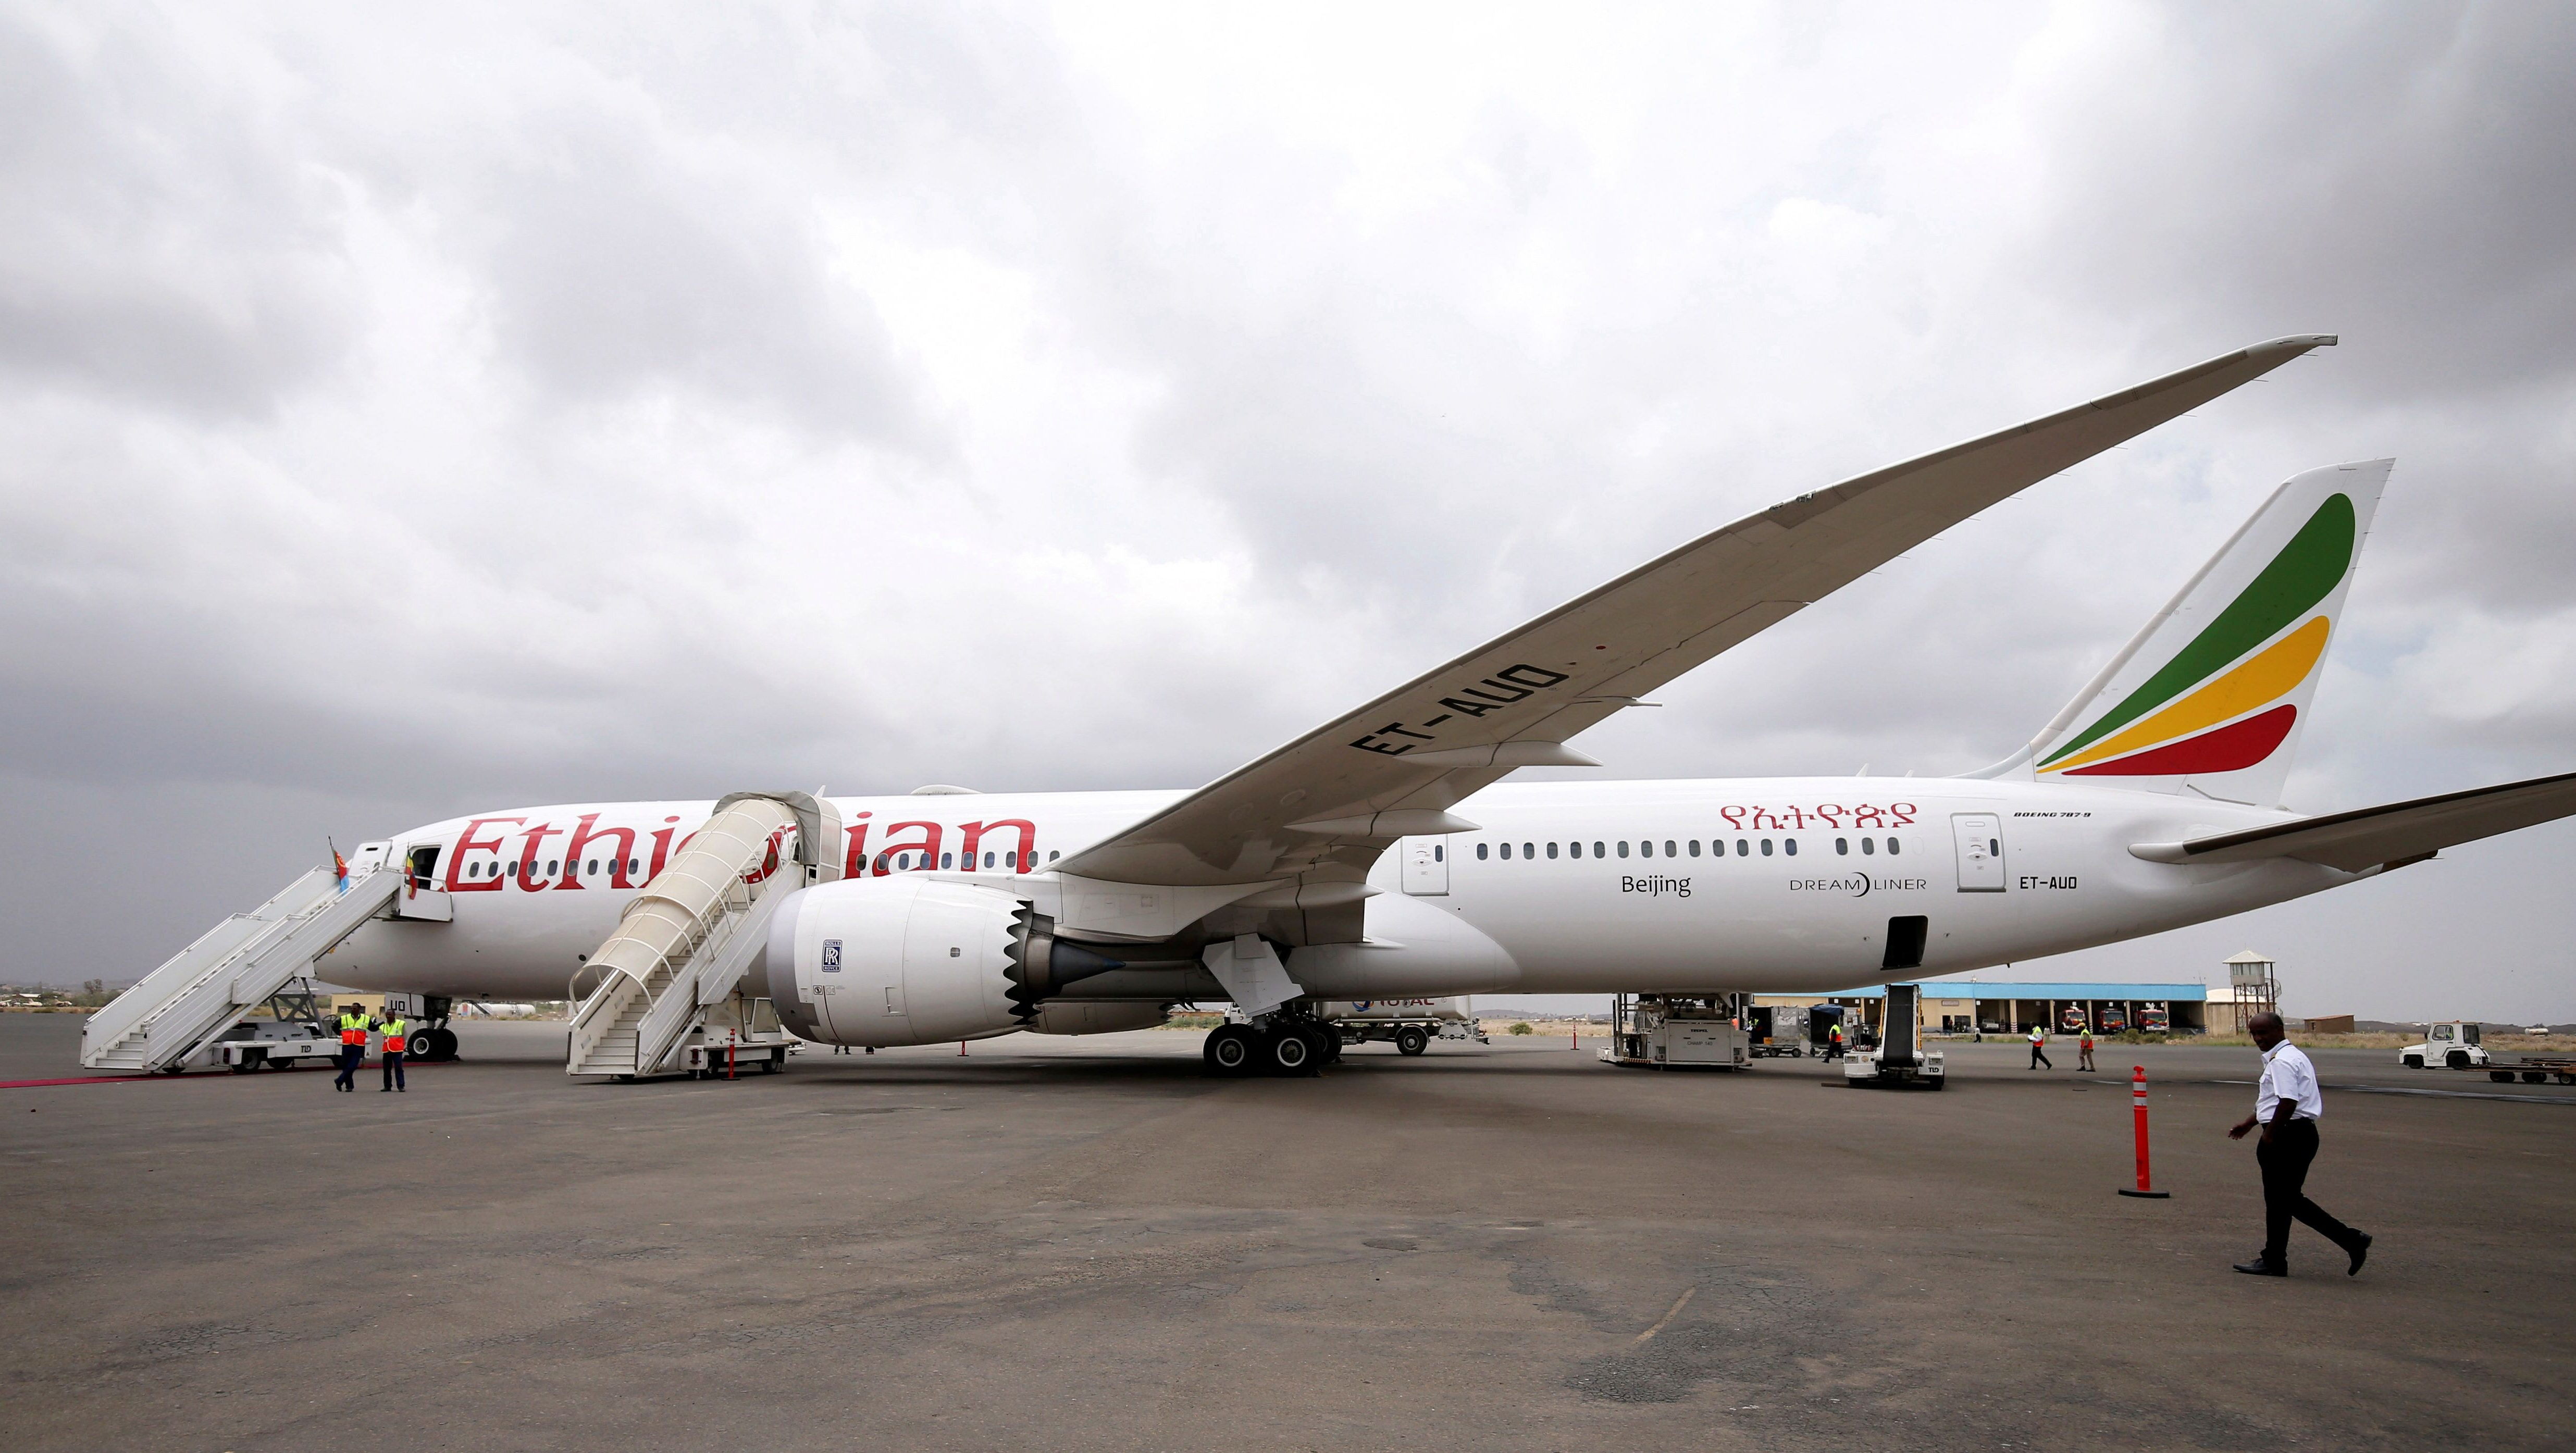 Ethiopian Airlines will start helping Chinese travelers move easier across Africa